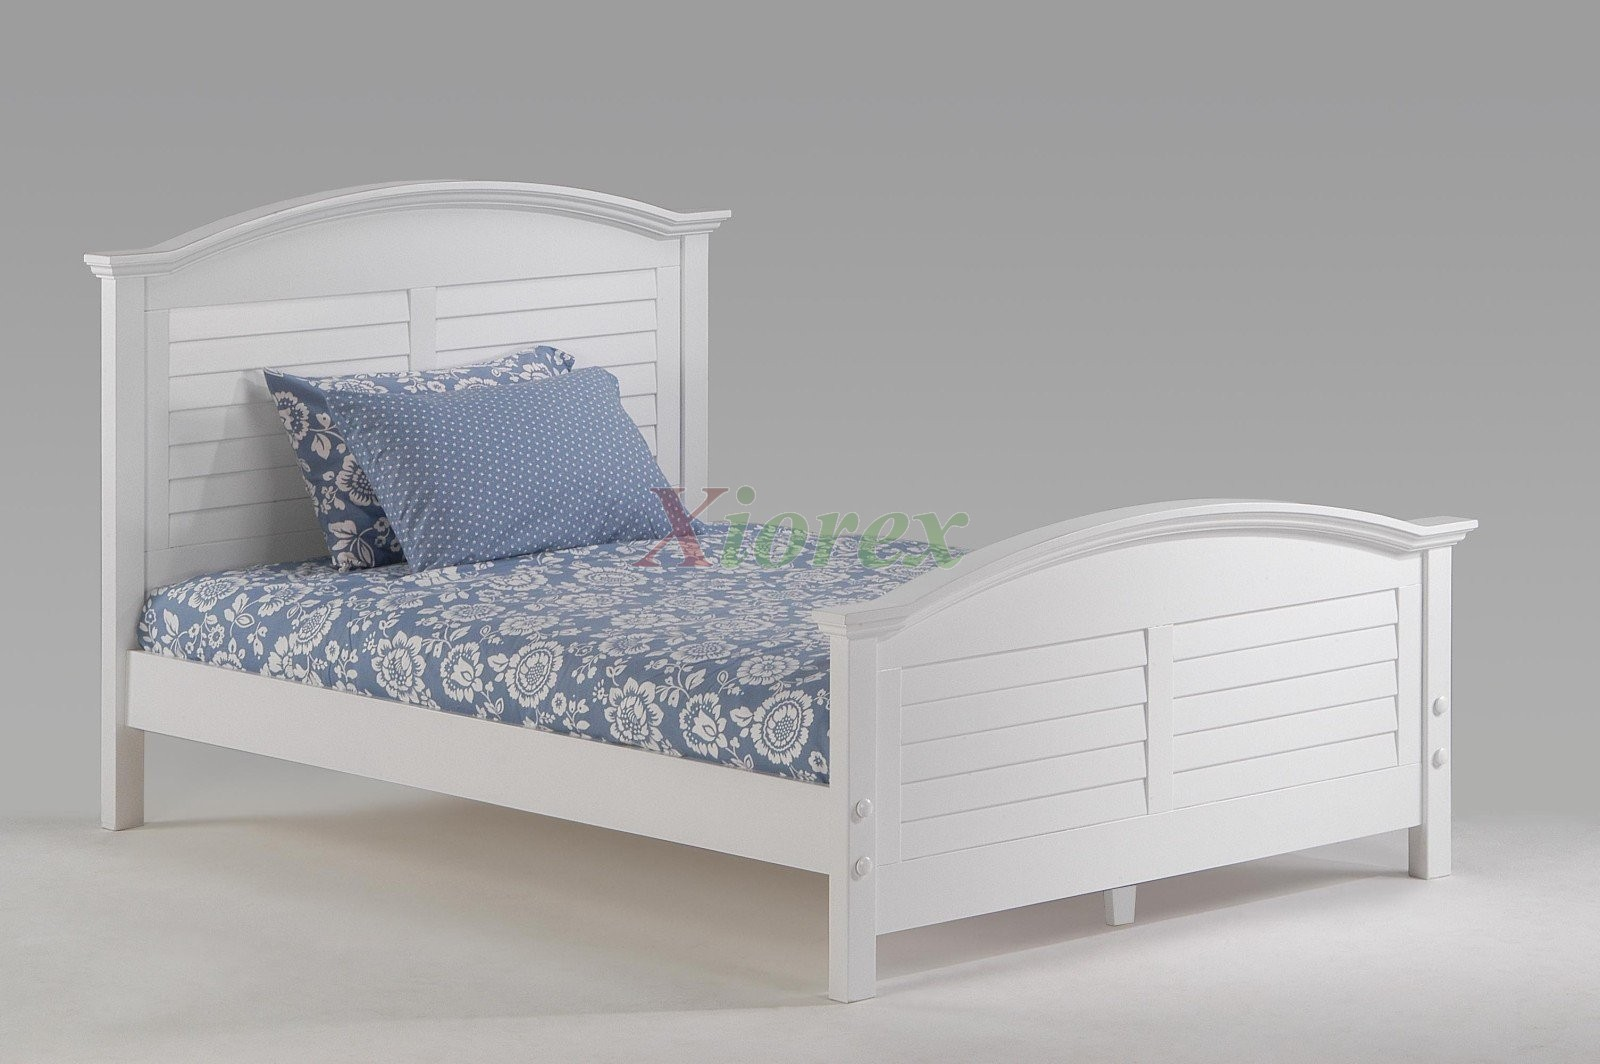 White Bed For Girls Night And Day Sandpiper Bed With